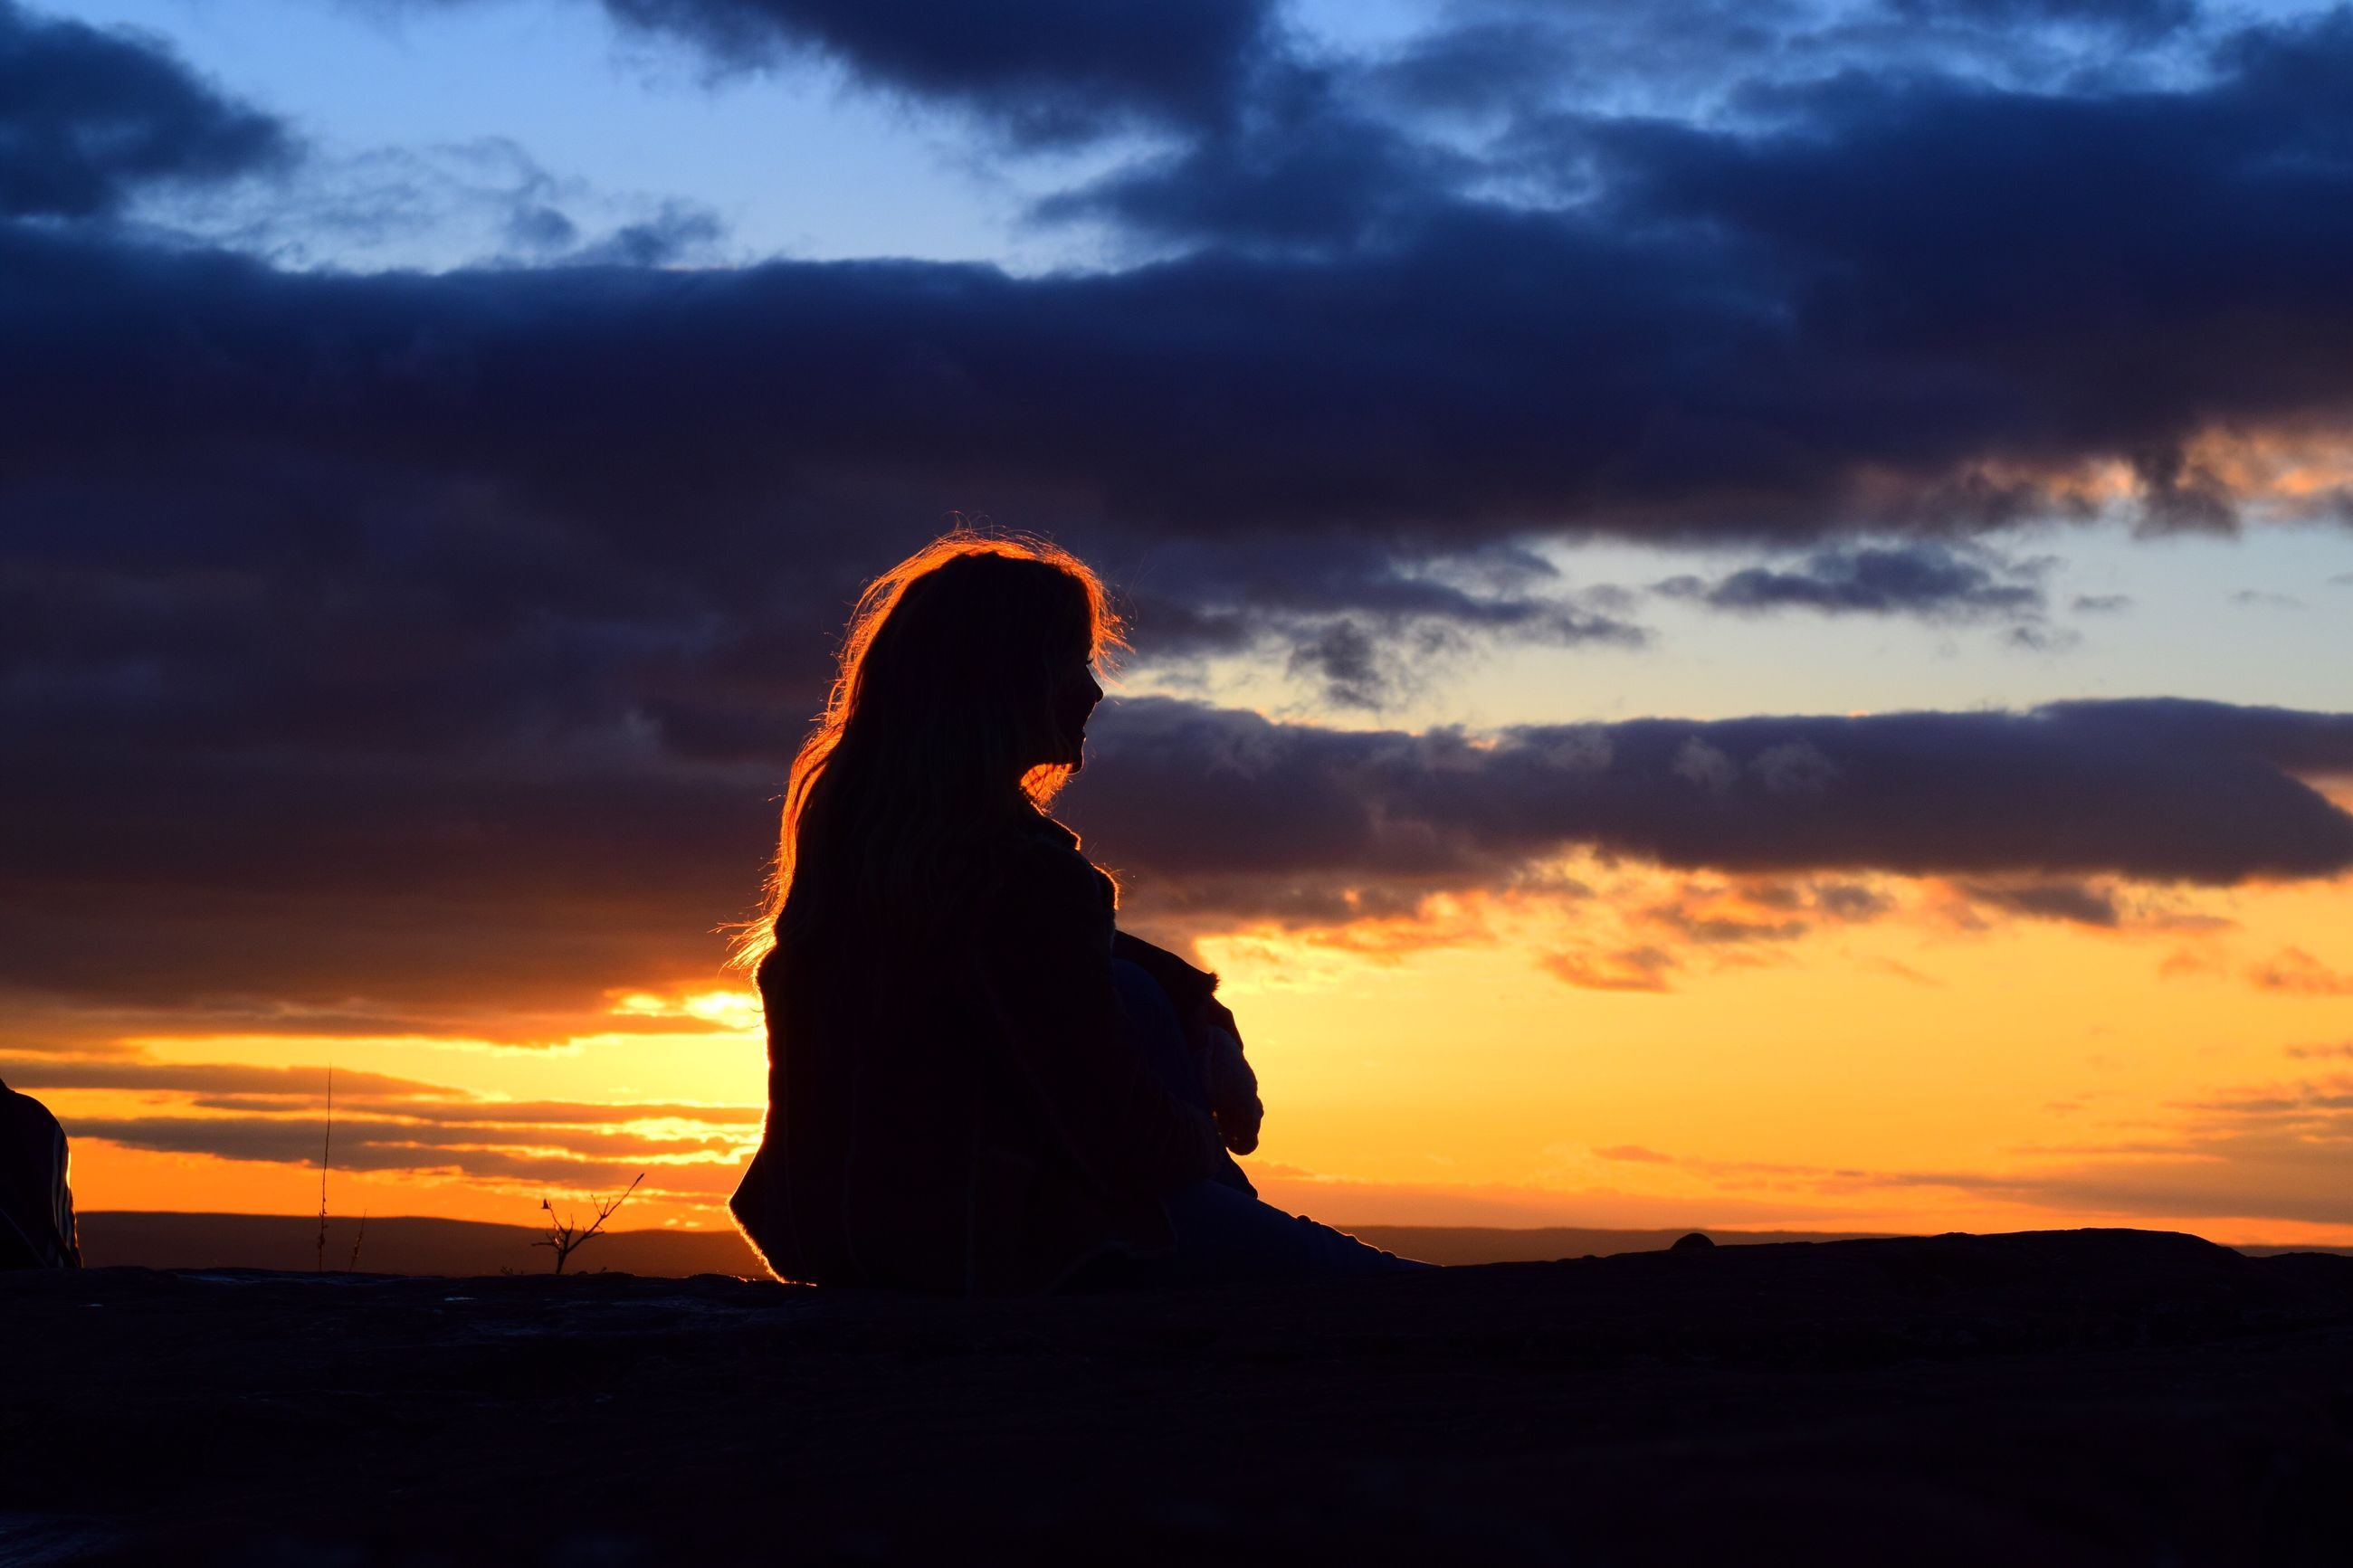 cloud - sky, sunset, sky, one person, sitting, young adult, one woman only, only women, relaxation, nature, adult, sea, outdoors, people, women, dreamlike, silhouette, adults only, leisure activity, one young woman only, beauty in nature, day